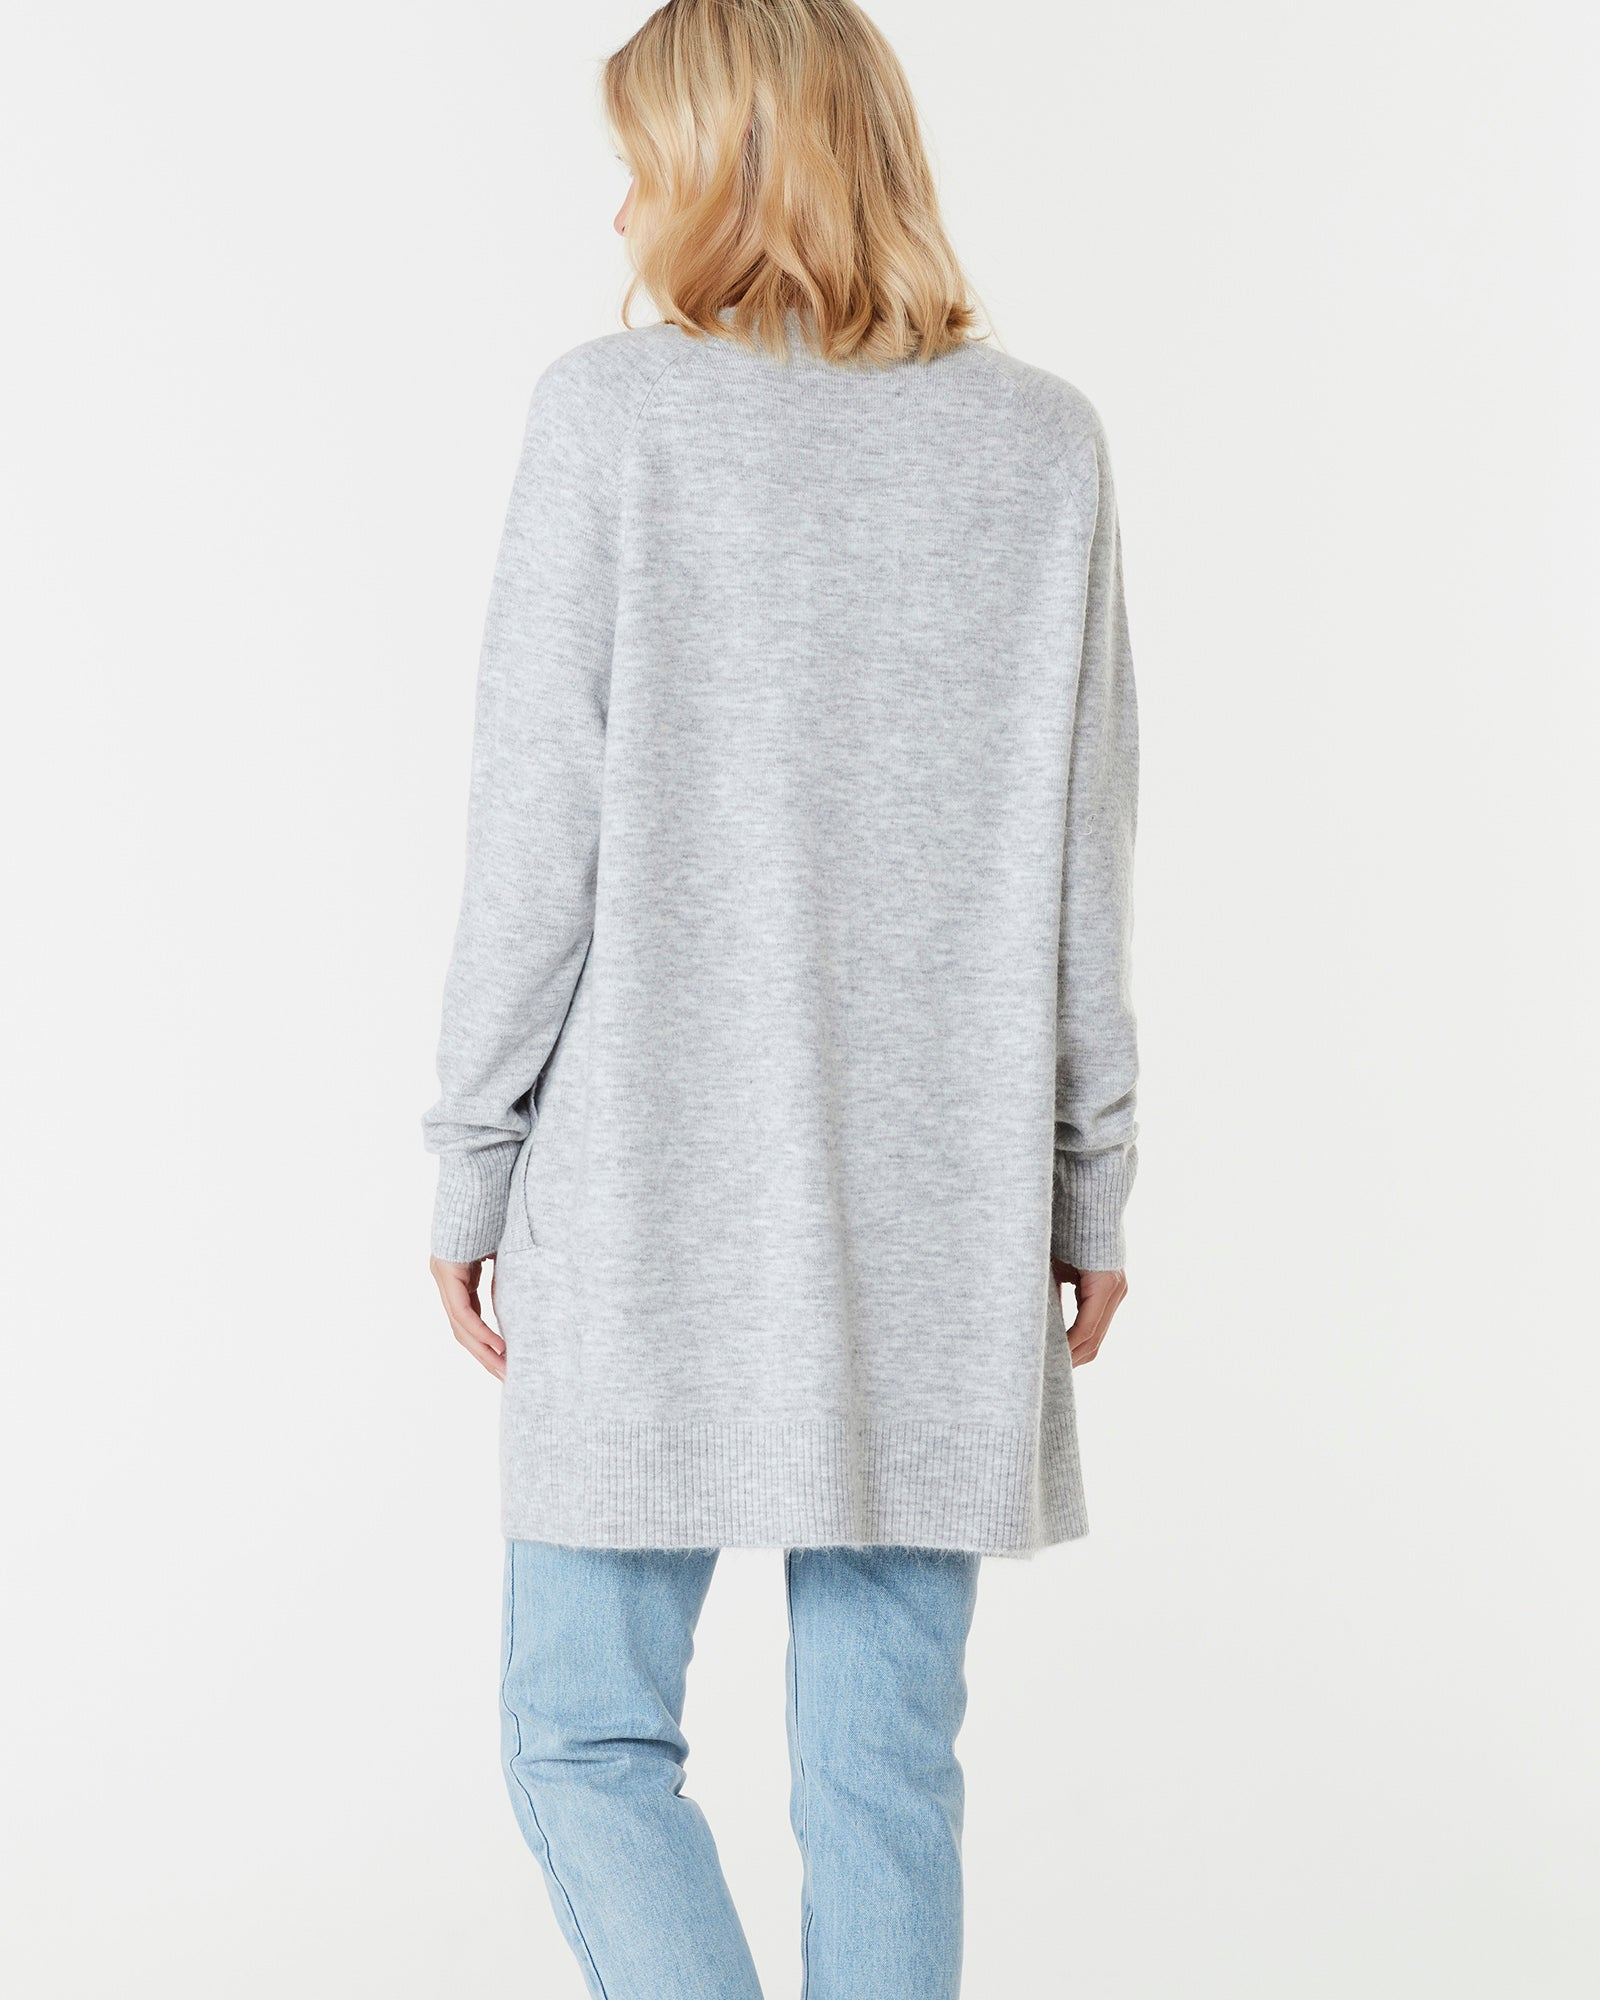 BROOKLYN SHORT CARDIGAN - LIGHT GREY